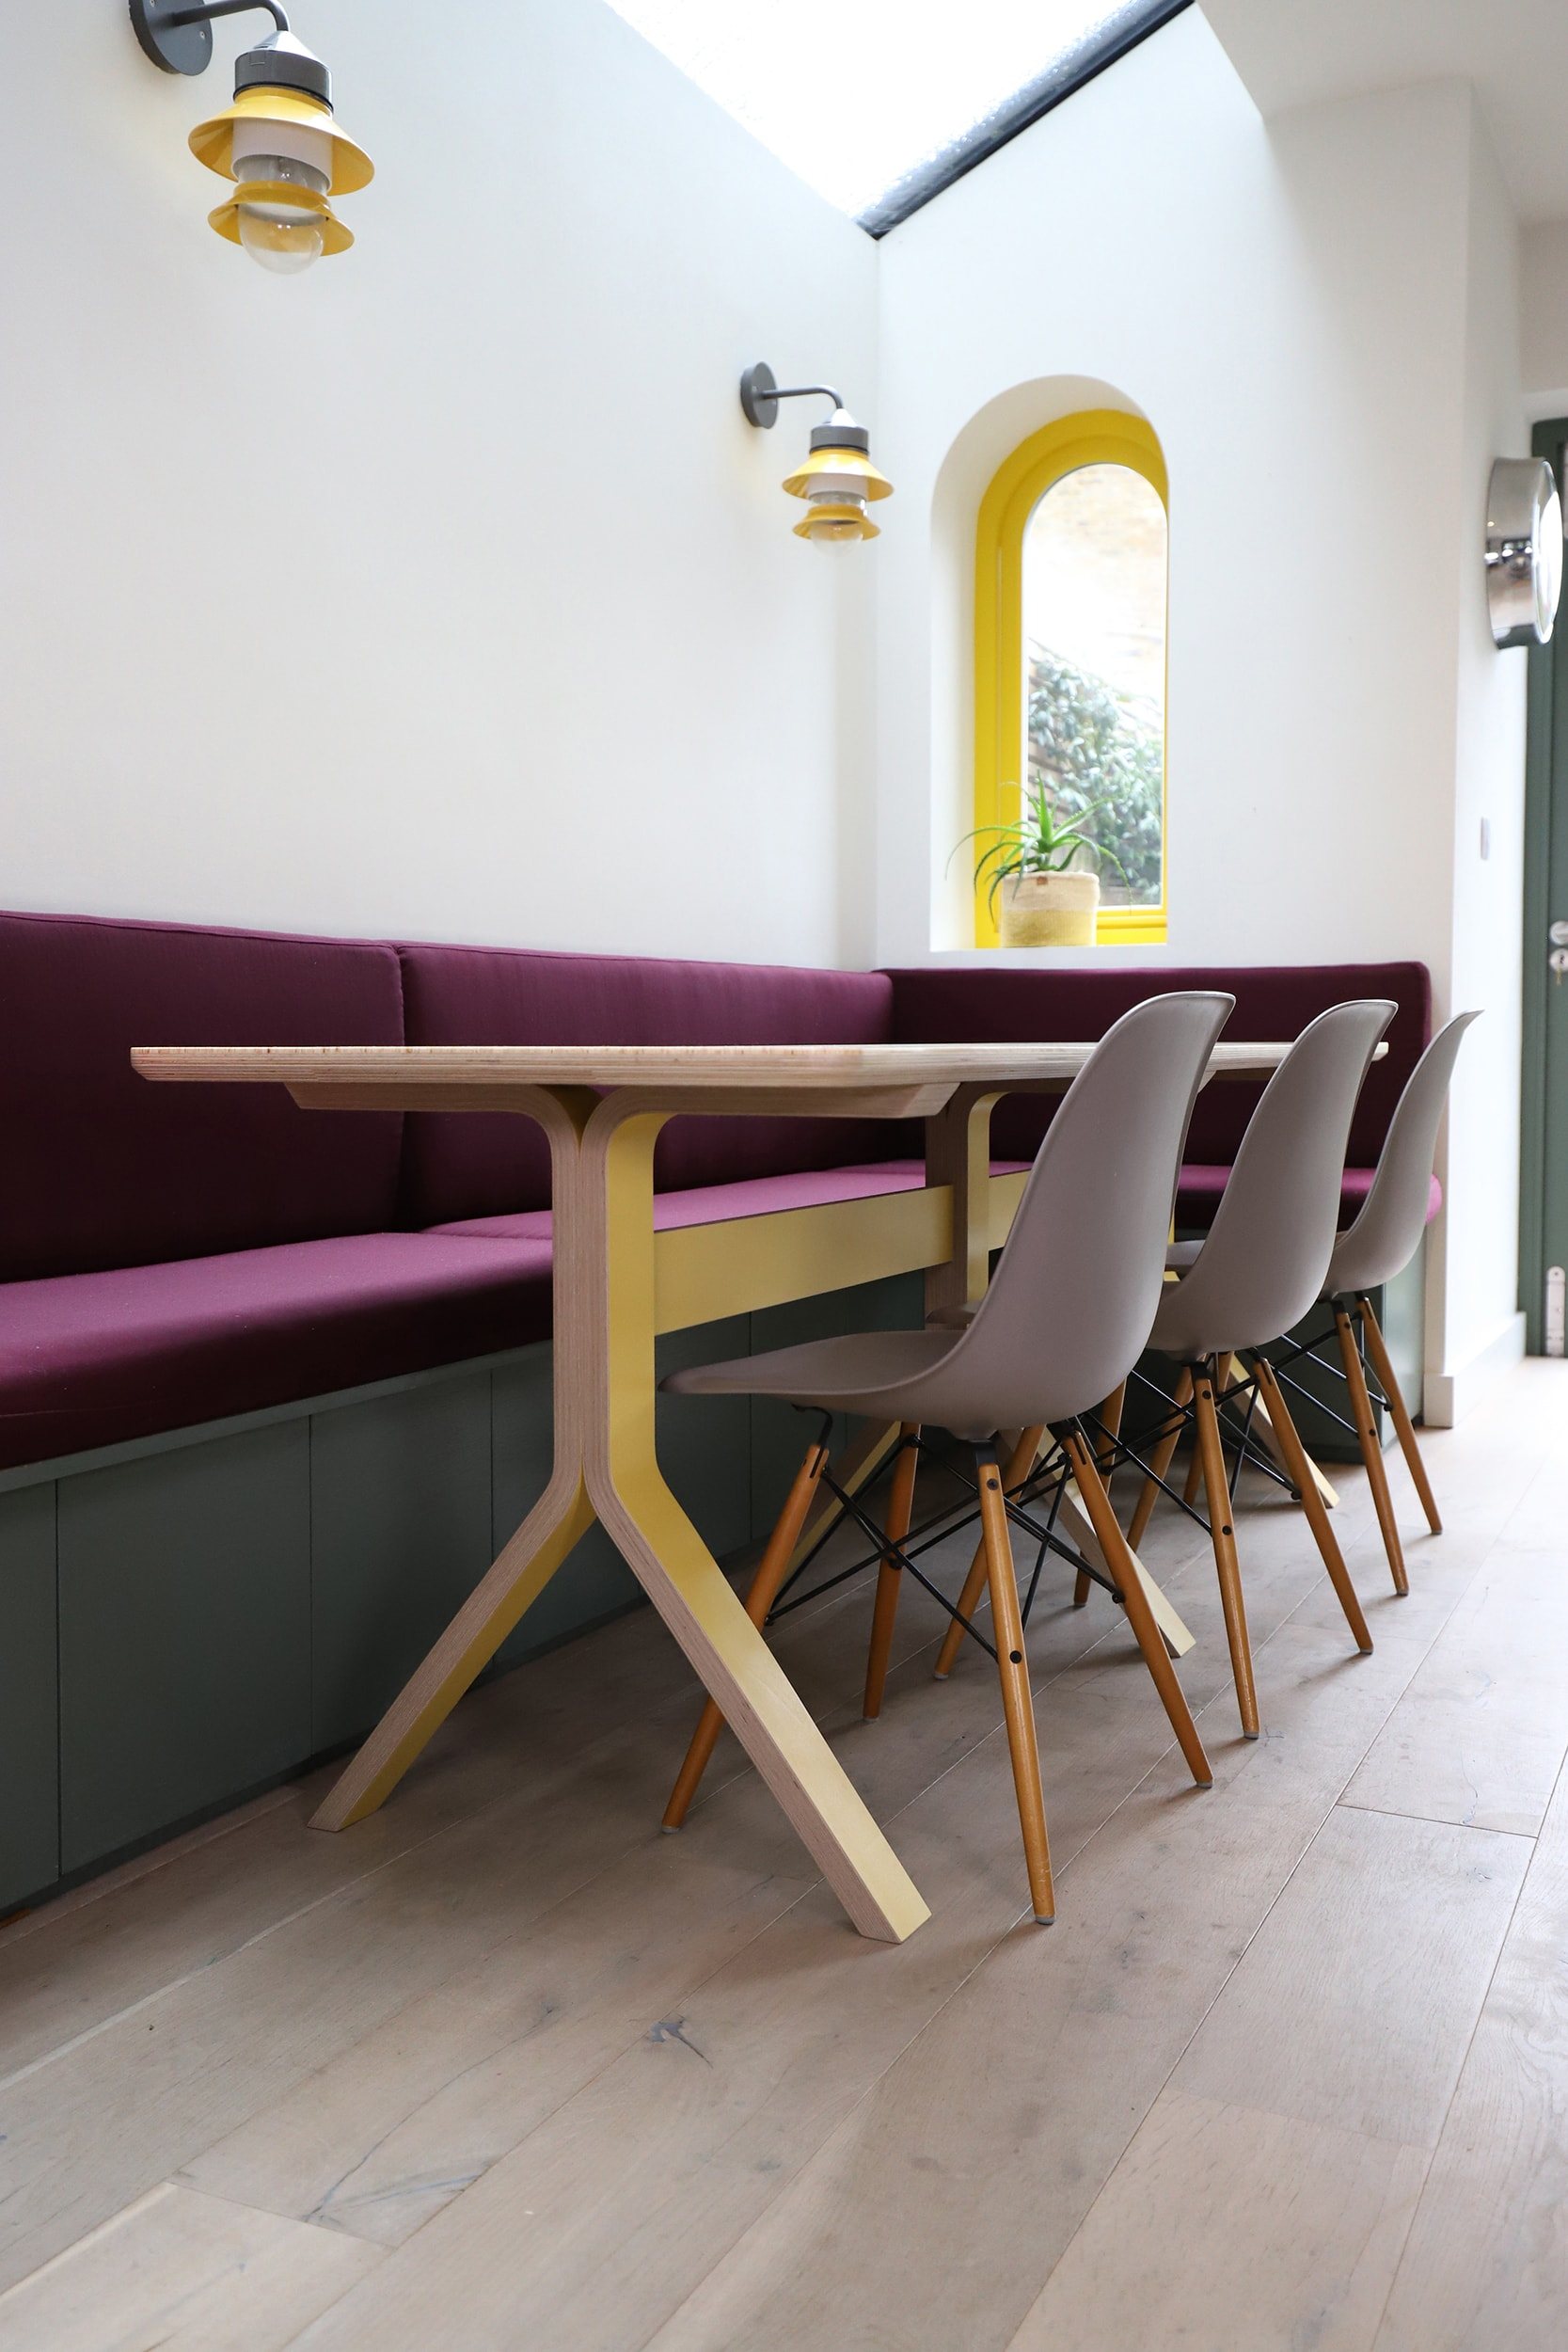 The Sea table in yellow with a sea of chairs and the bespoke seating area Lozi created.